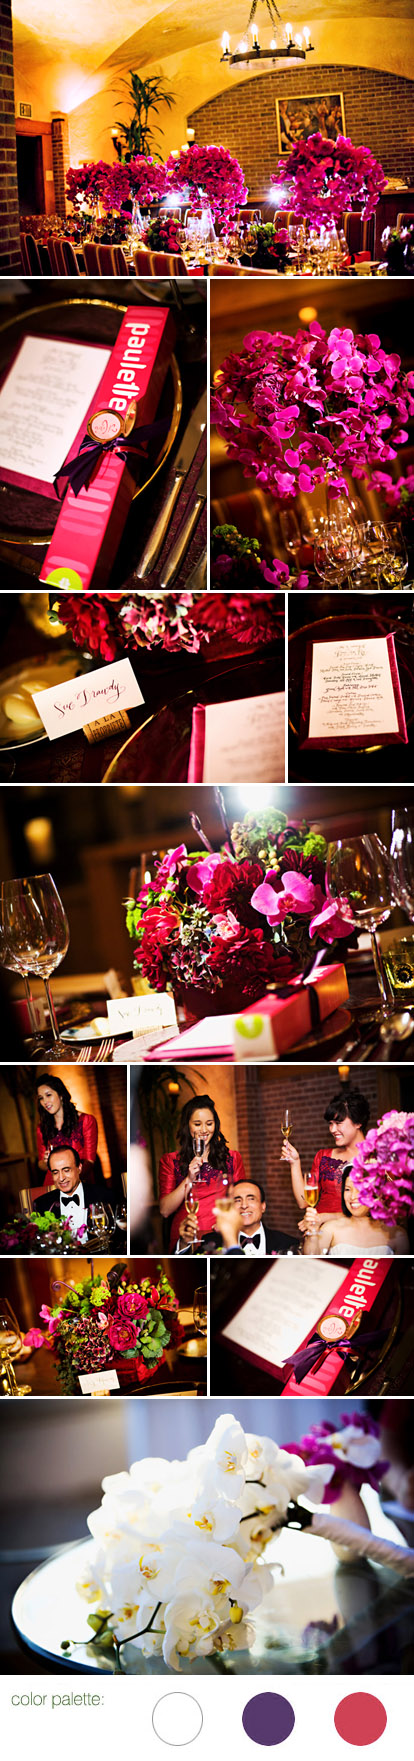 Eggplant, raspberry, plum, and gold wedding reception at Bacara Resort and Spa, Santa Barbara, California, images by Trista Lerit